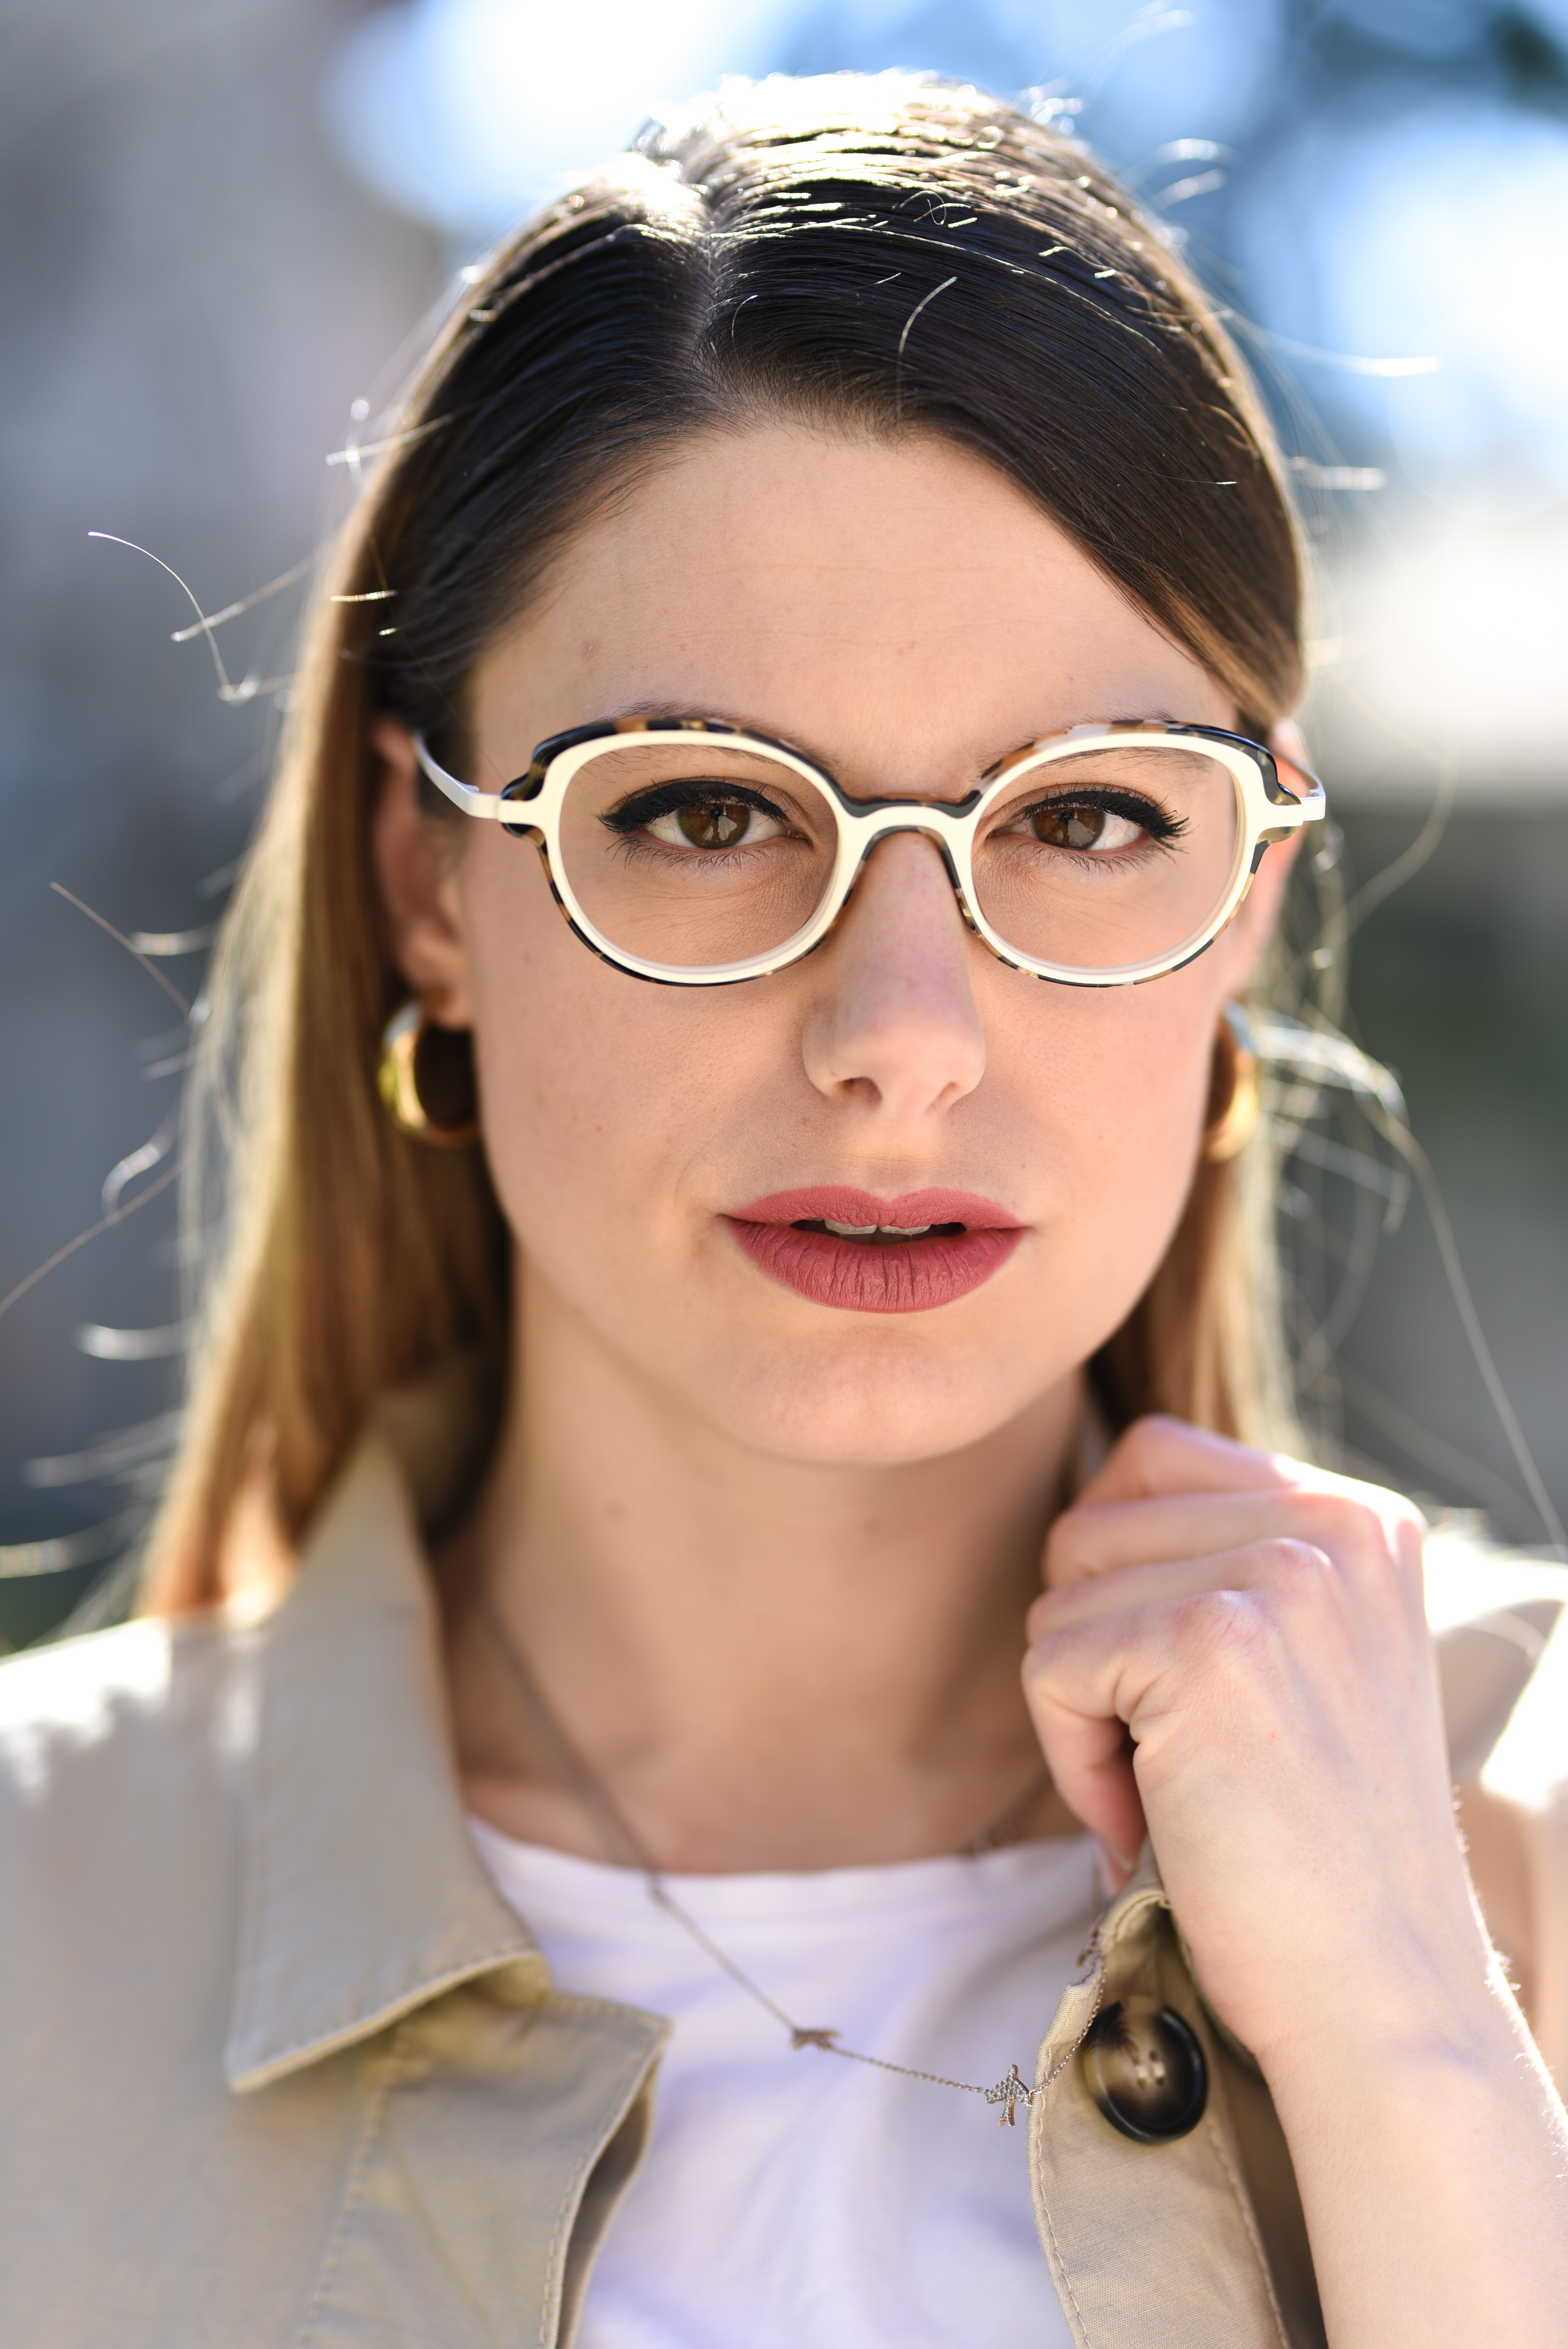 giulia de martin behind my glasses naoned lunettes eyewear 2019 eyewear blogger influencer sunglasses eyeglasses (15 di 15)